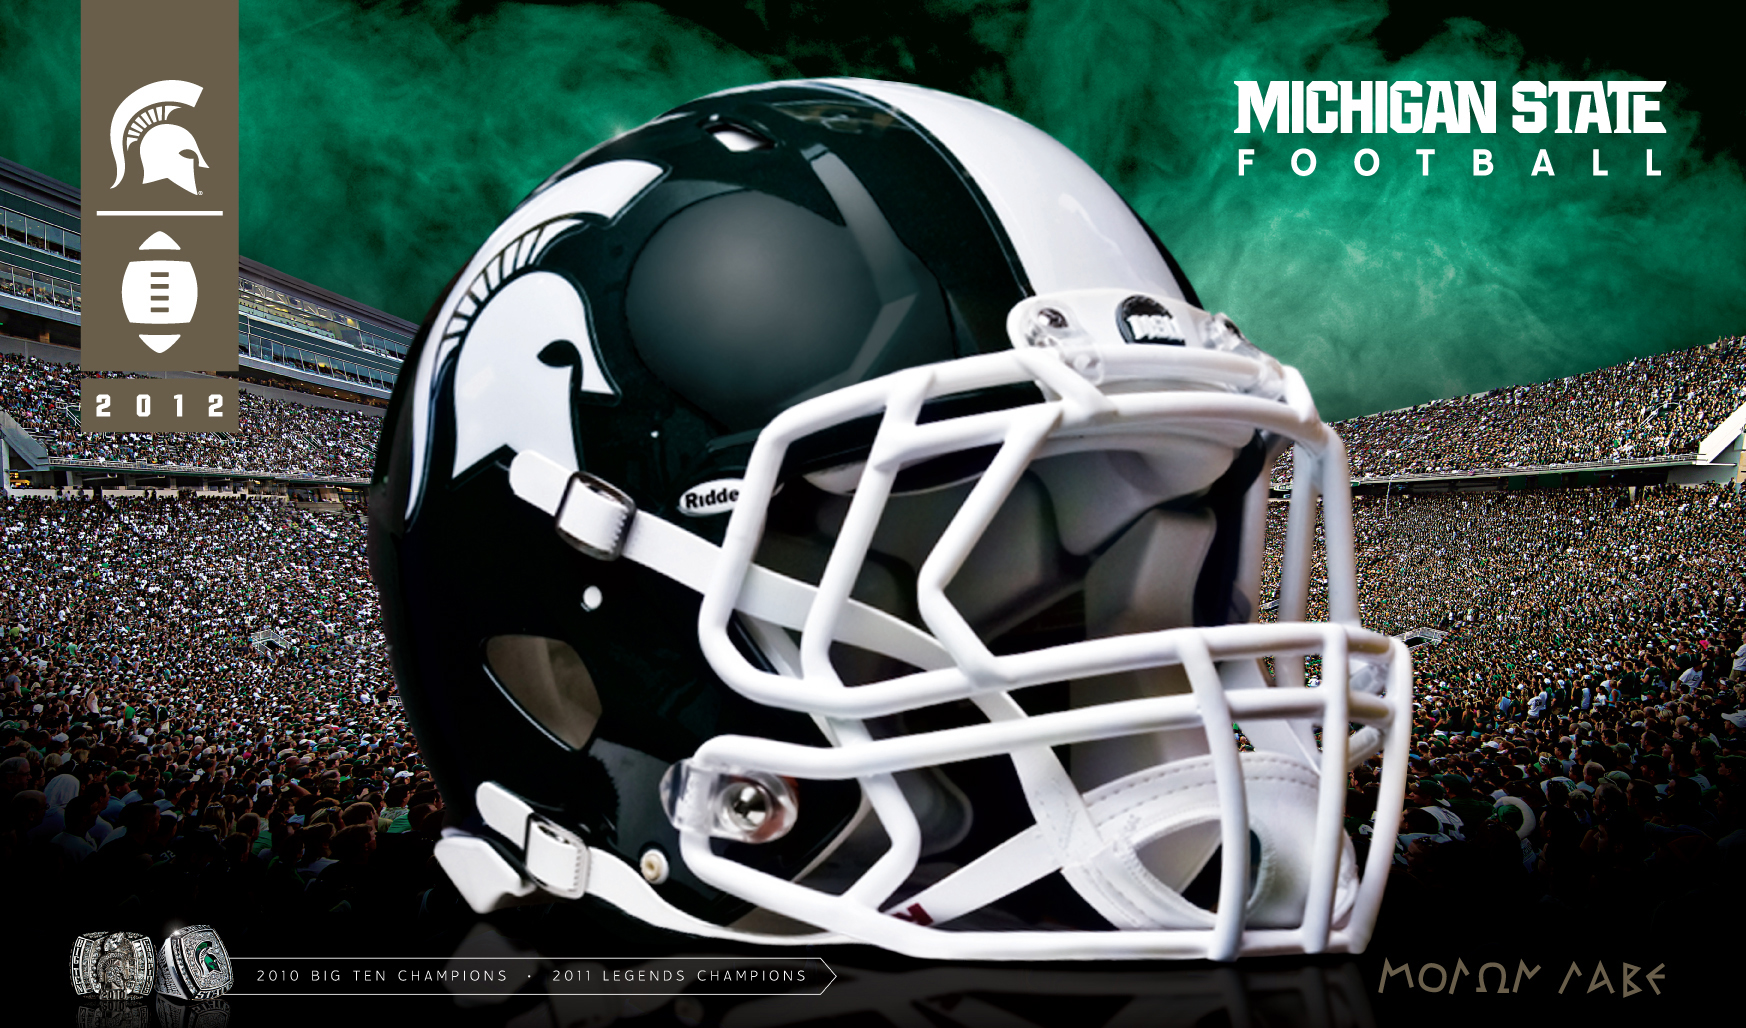 Michigan State Football videos images and buzz 1746x1028